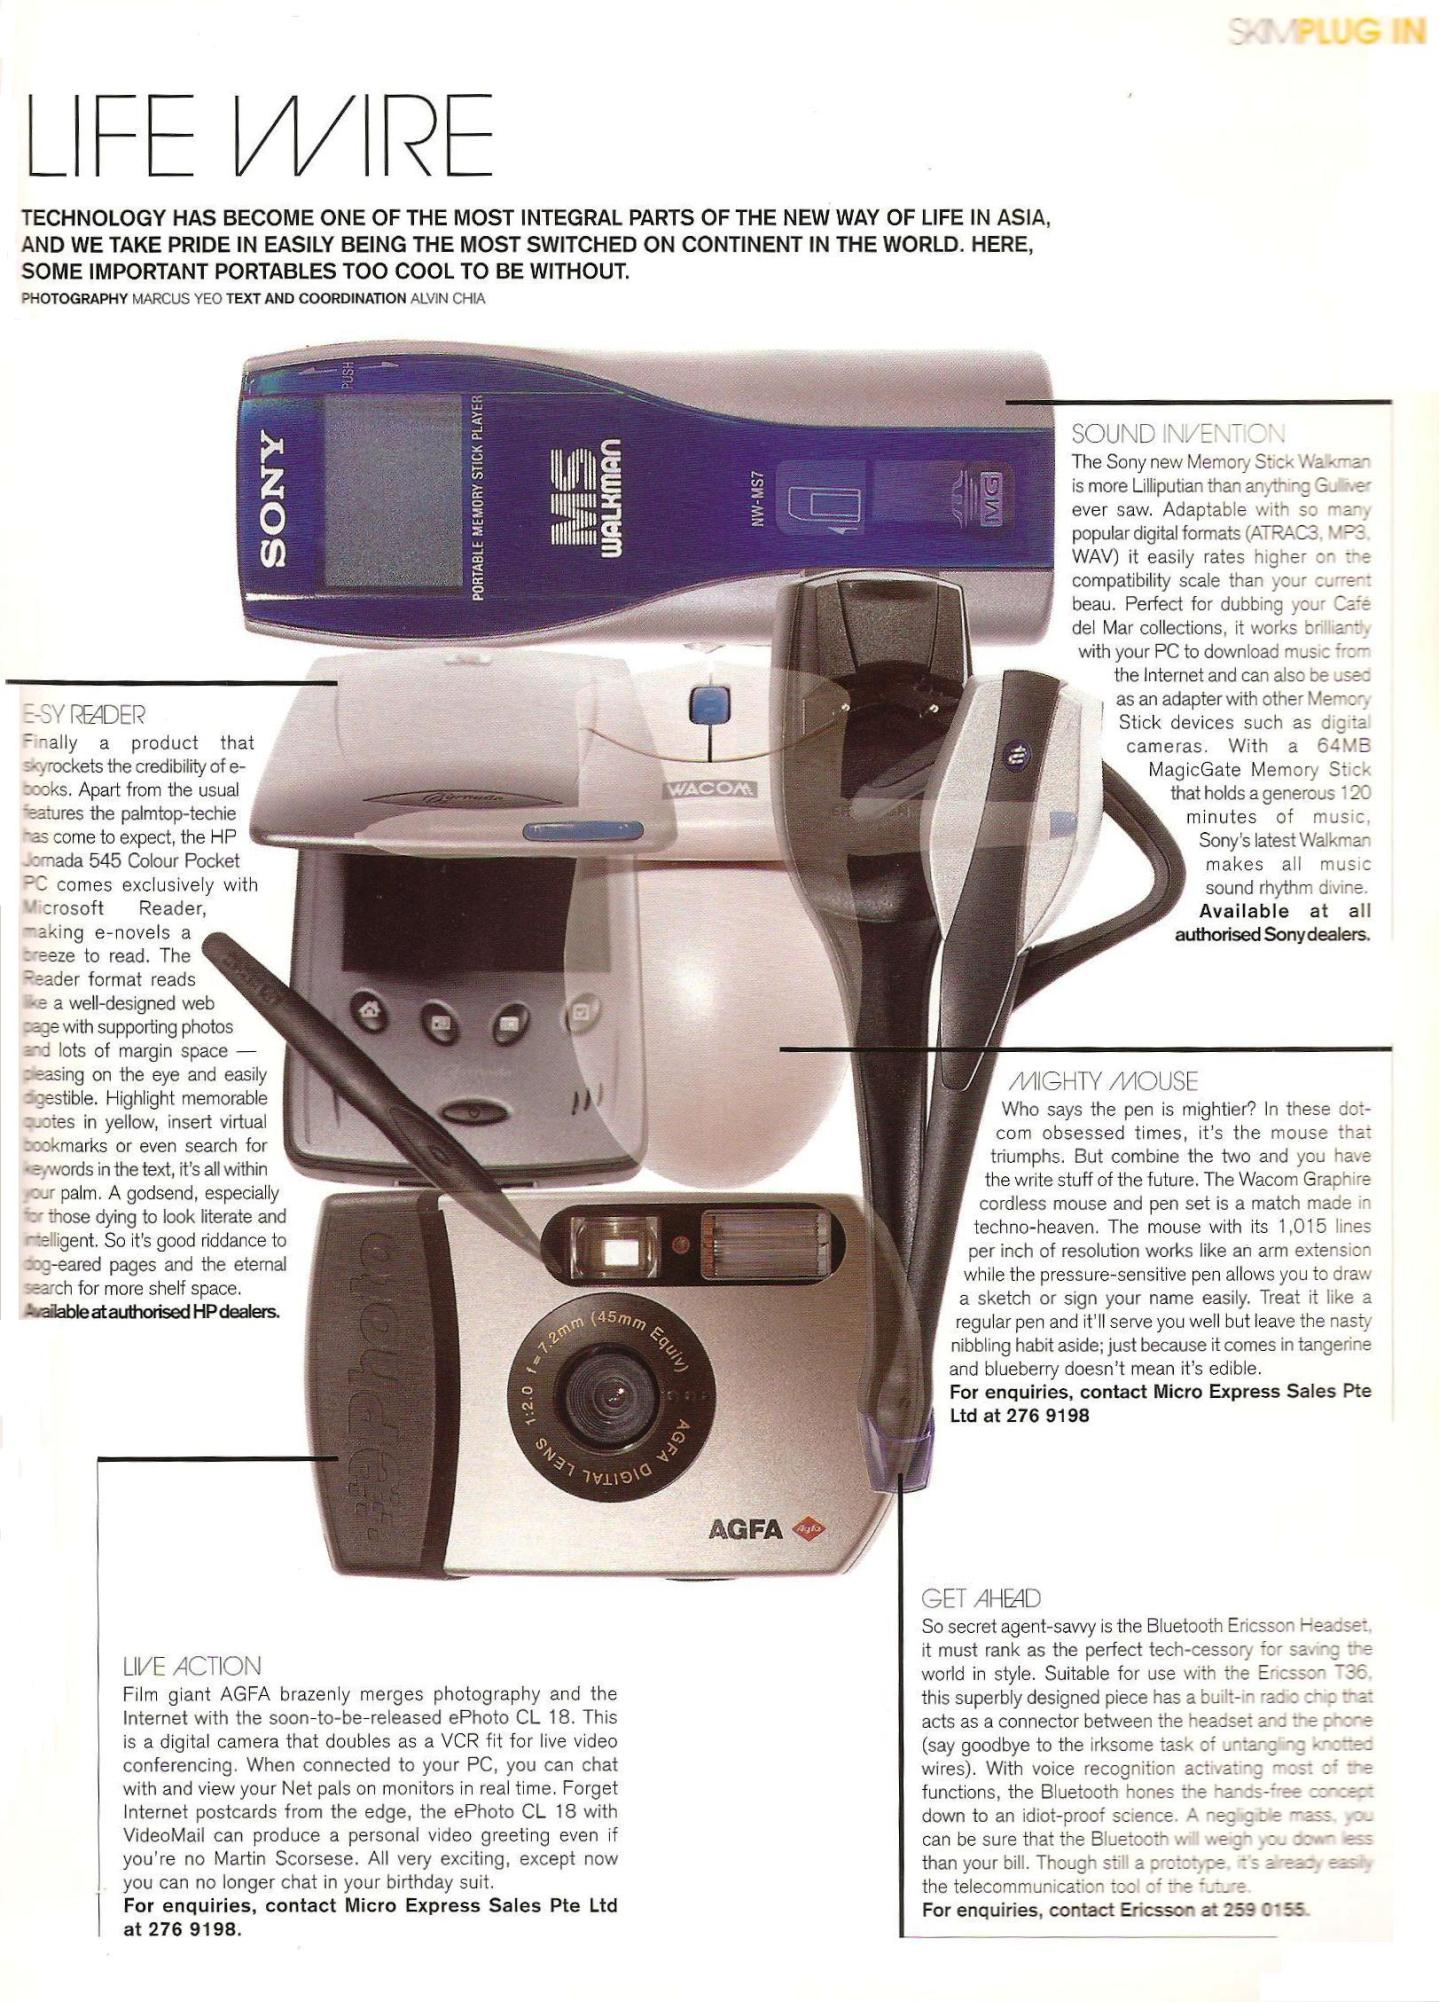 Technology product review for magazine in 2000